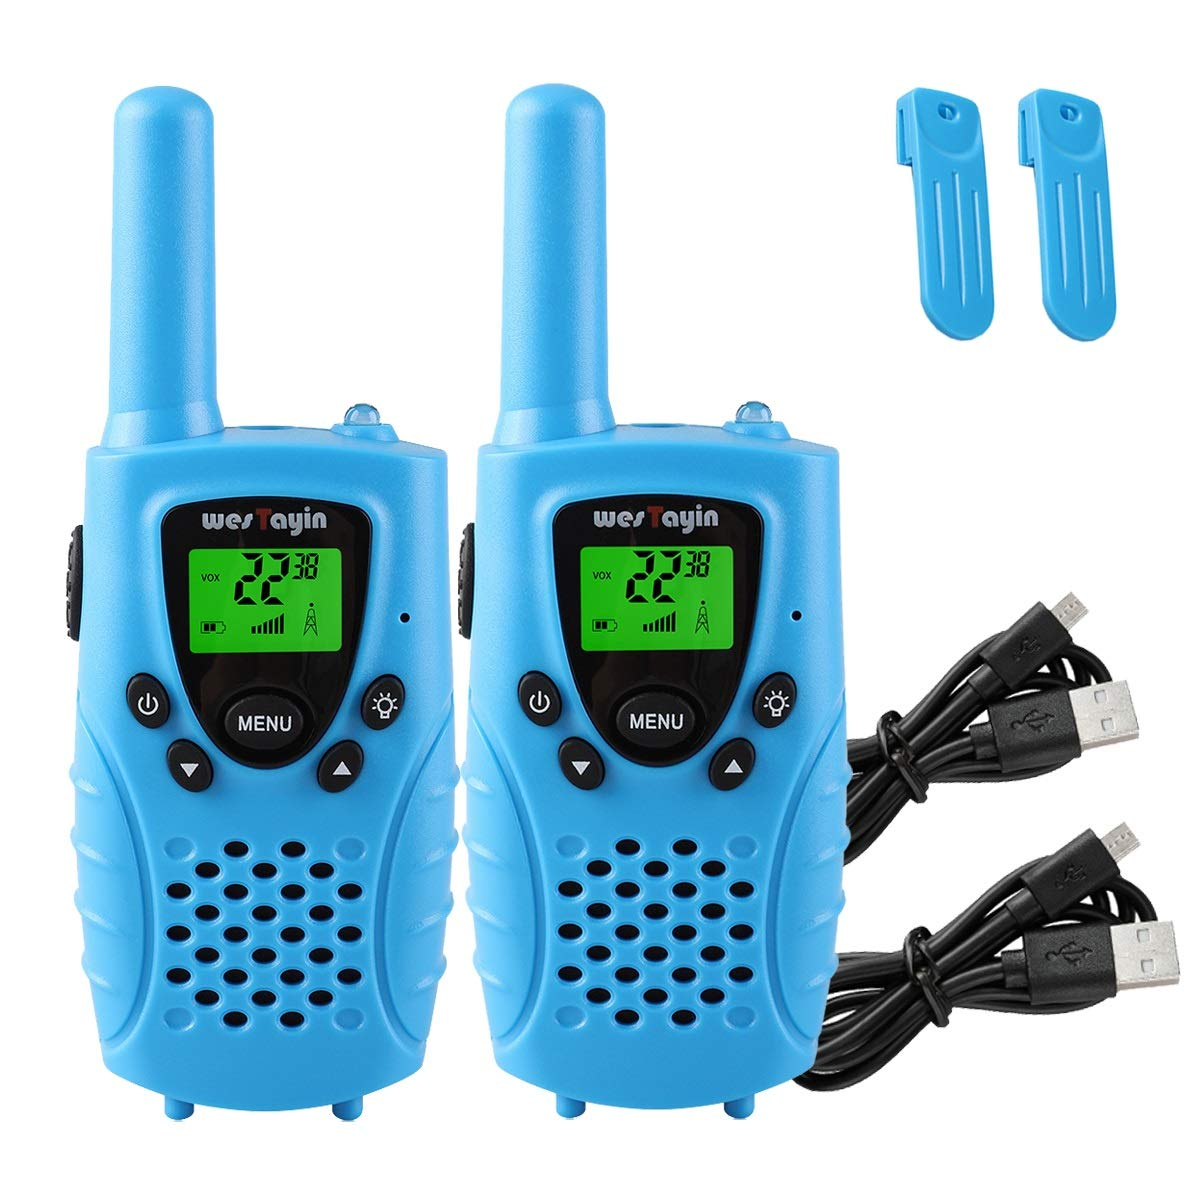 WES TAYIN Kids Walkie Talkies Rechargable, 4 Miles Long Range Walkie Talkies Toy with Durable Rugged Sports Design and Flashlight, Two Way Radios Toy 2 Pack, Batteries not Included(Blue) by WES TAYIN (Image #1)